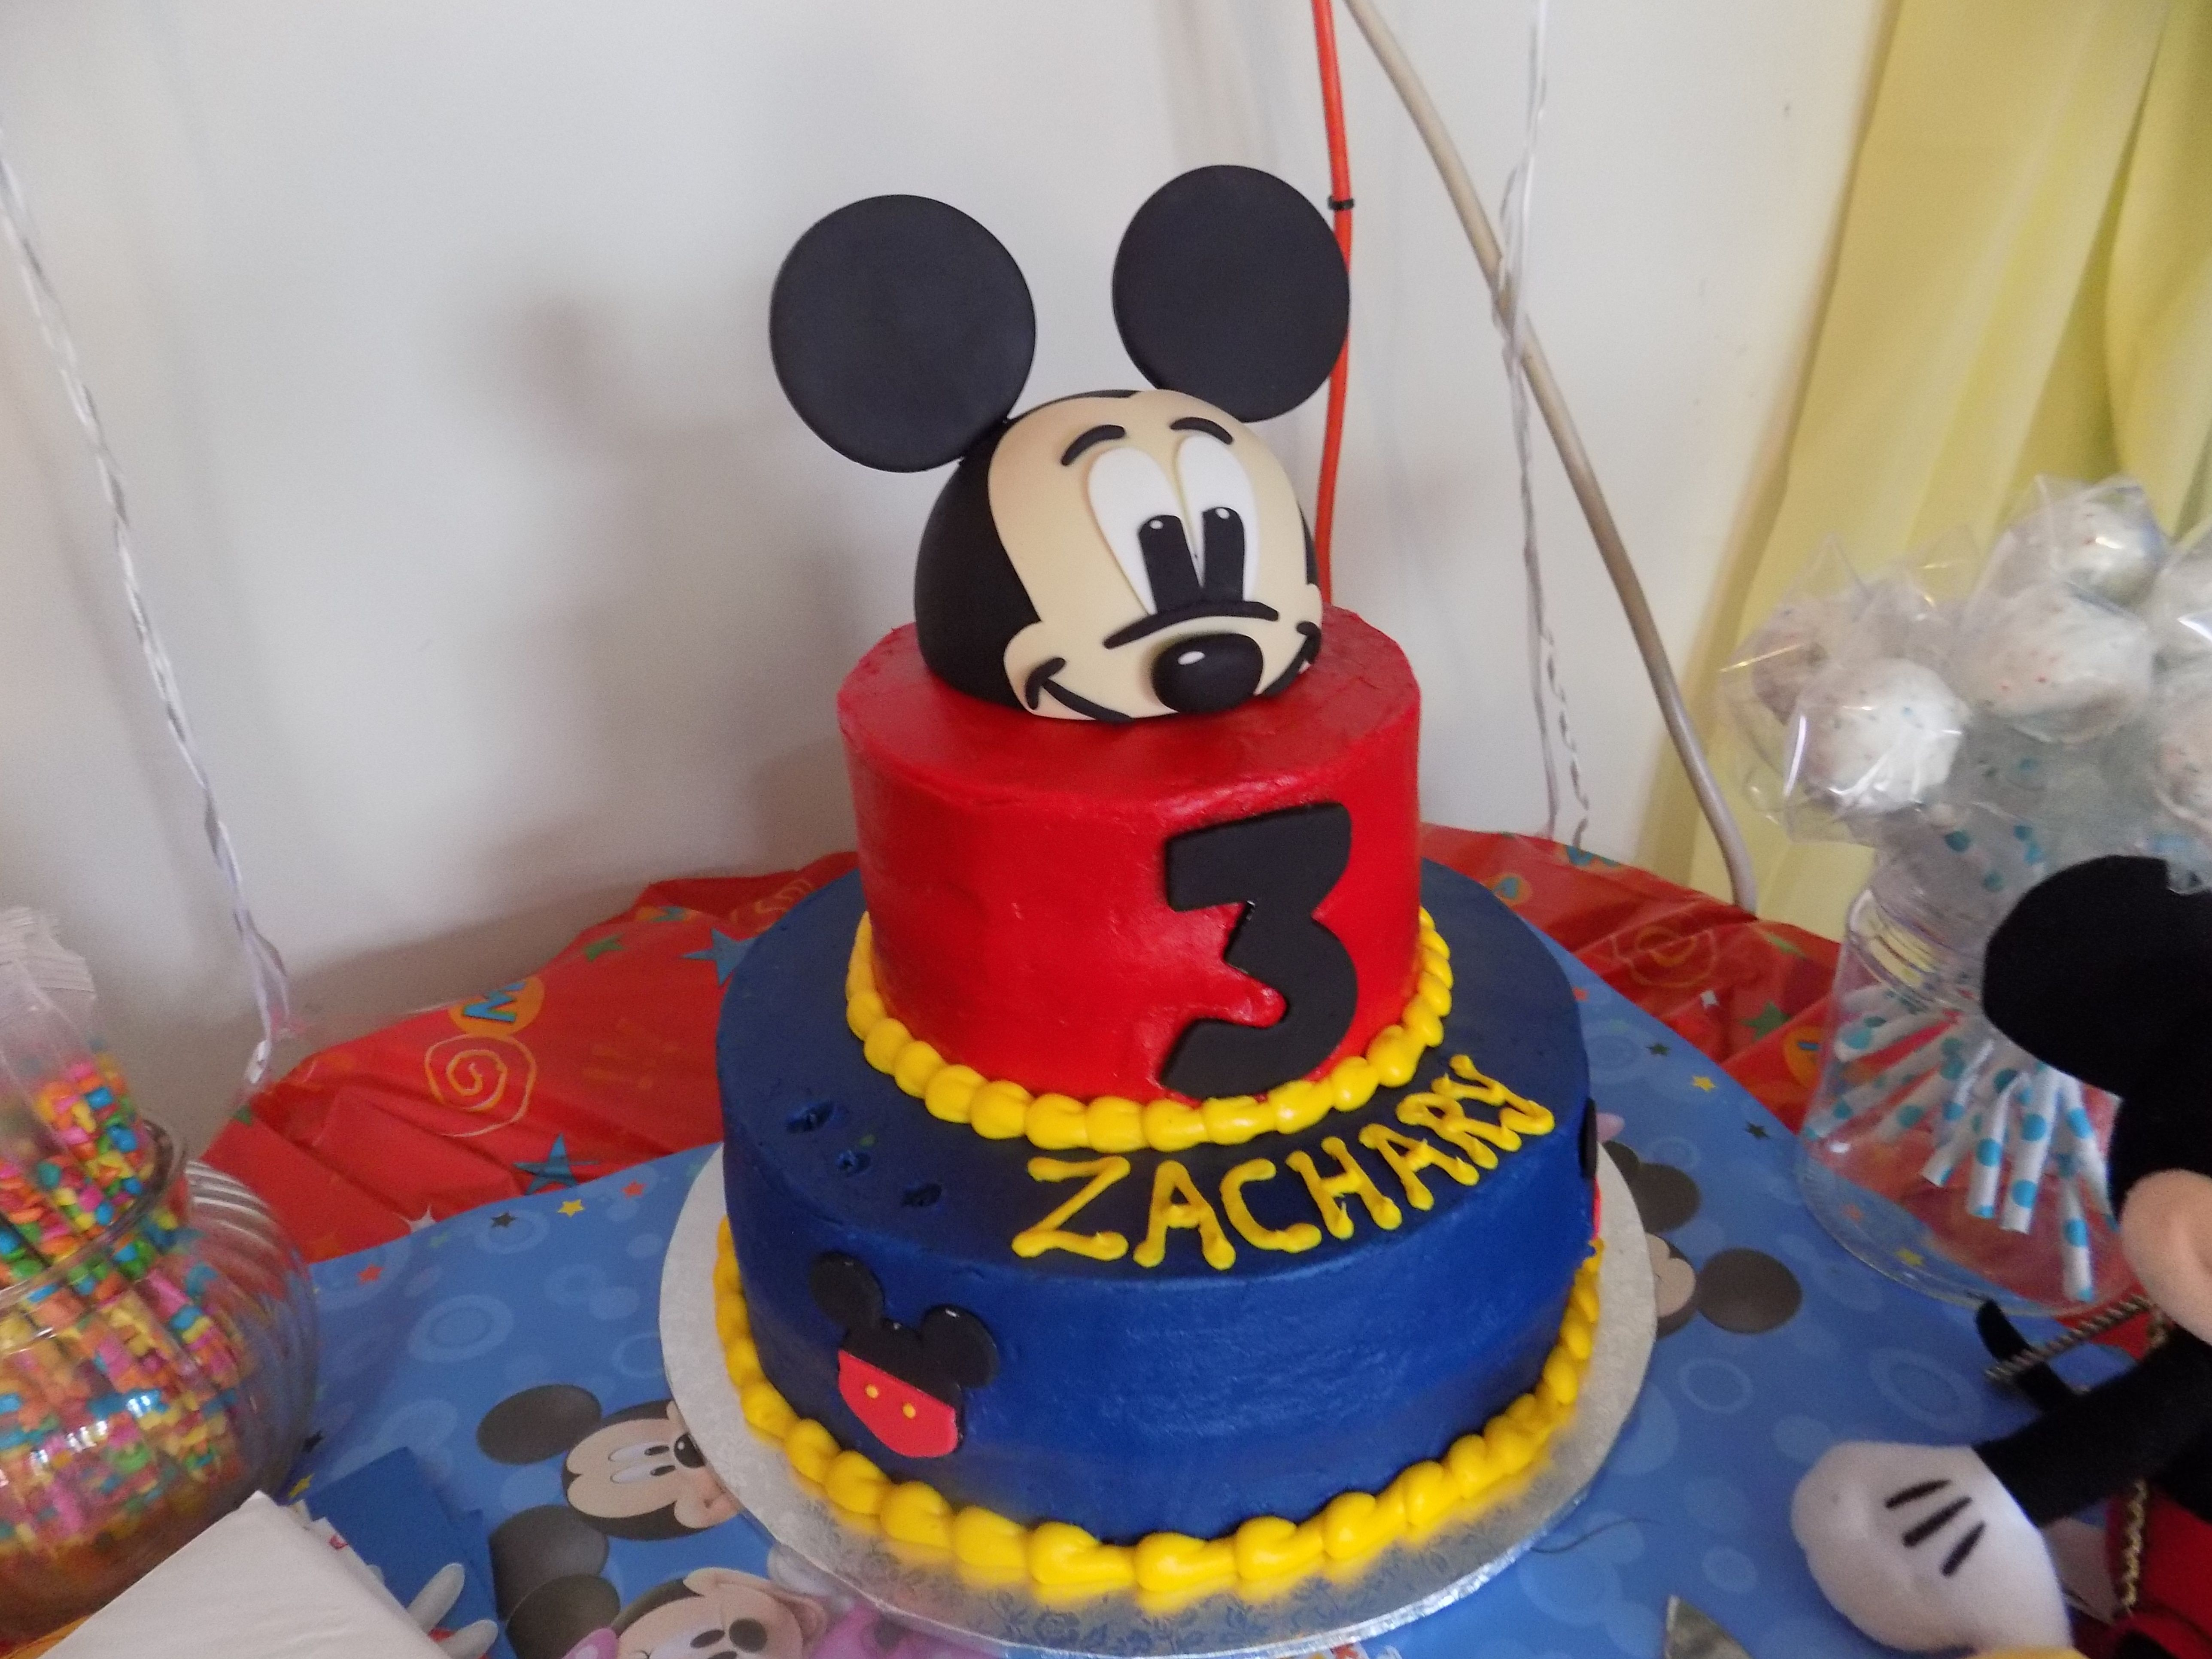 Mickey Cake Affordable 2 Tier Walmart Cake W Custom Colors 58